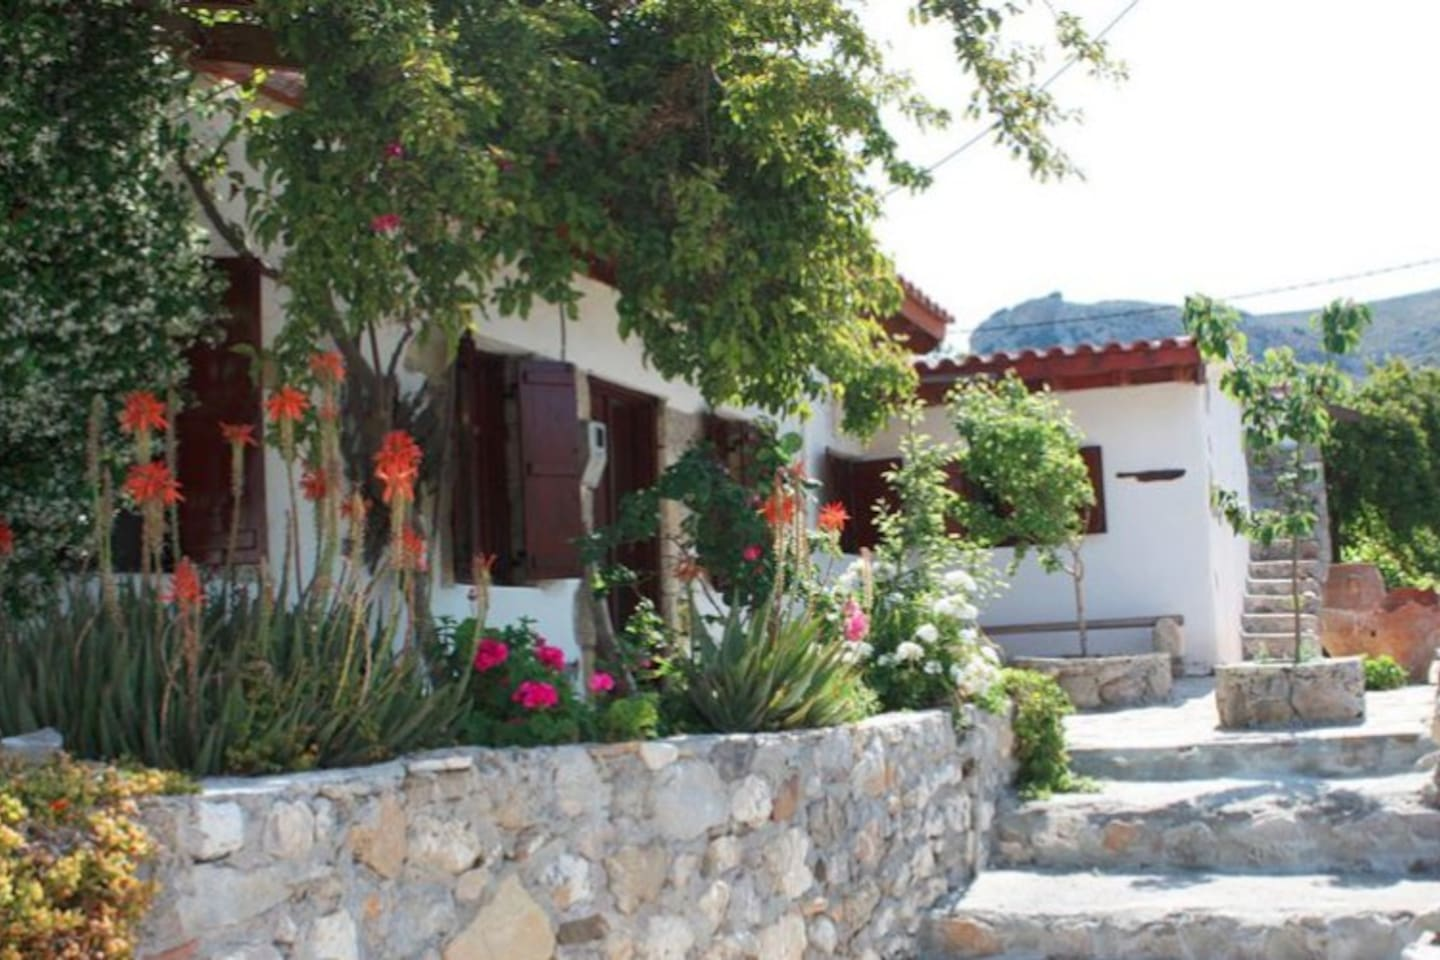 The house is set in a magnificent natural bowl, surrounded by mountains. The village has is own 2km Gorge. The area is perfect for walking holidays but still only 20 minuets drive to some magnificent sandy beaches and a seaside town.